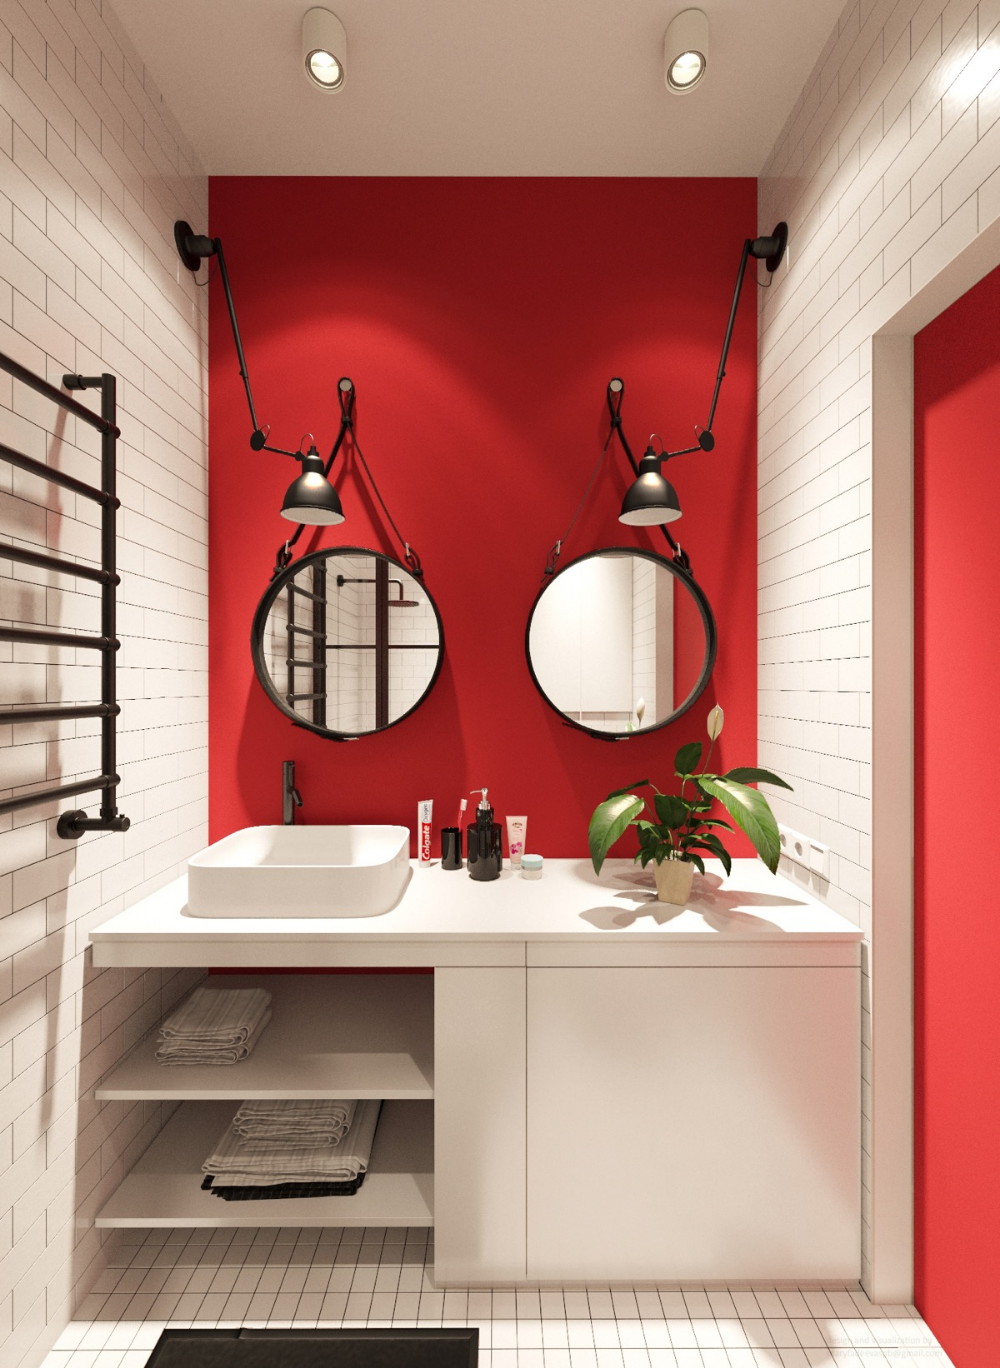 51 red bathrooms design ideas with tips to decorate and